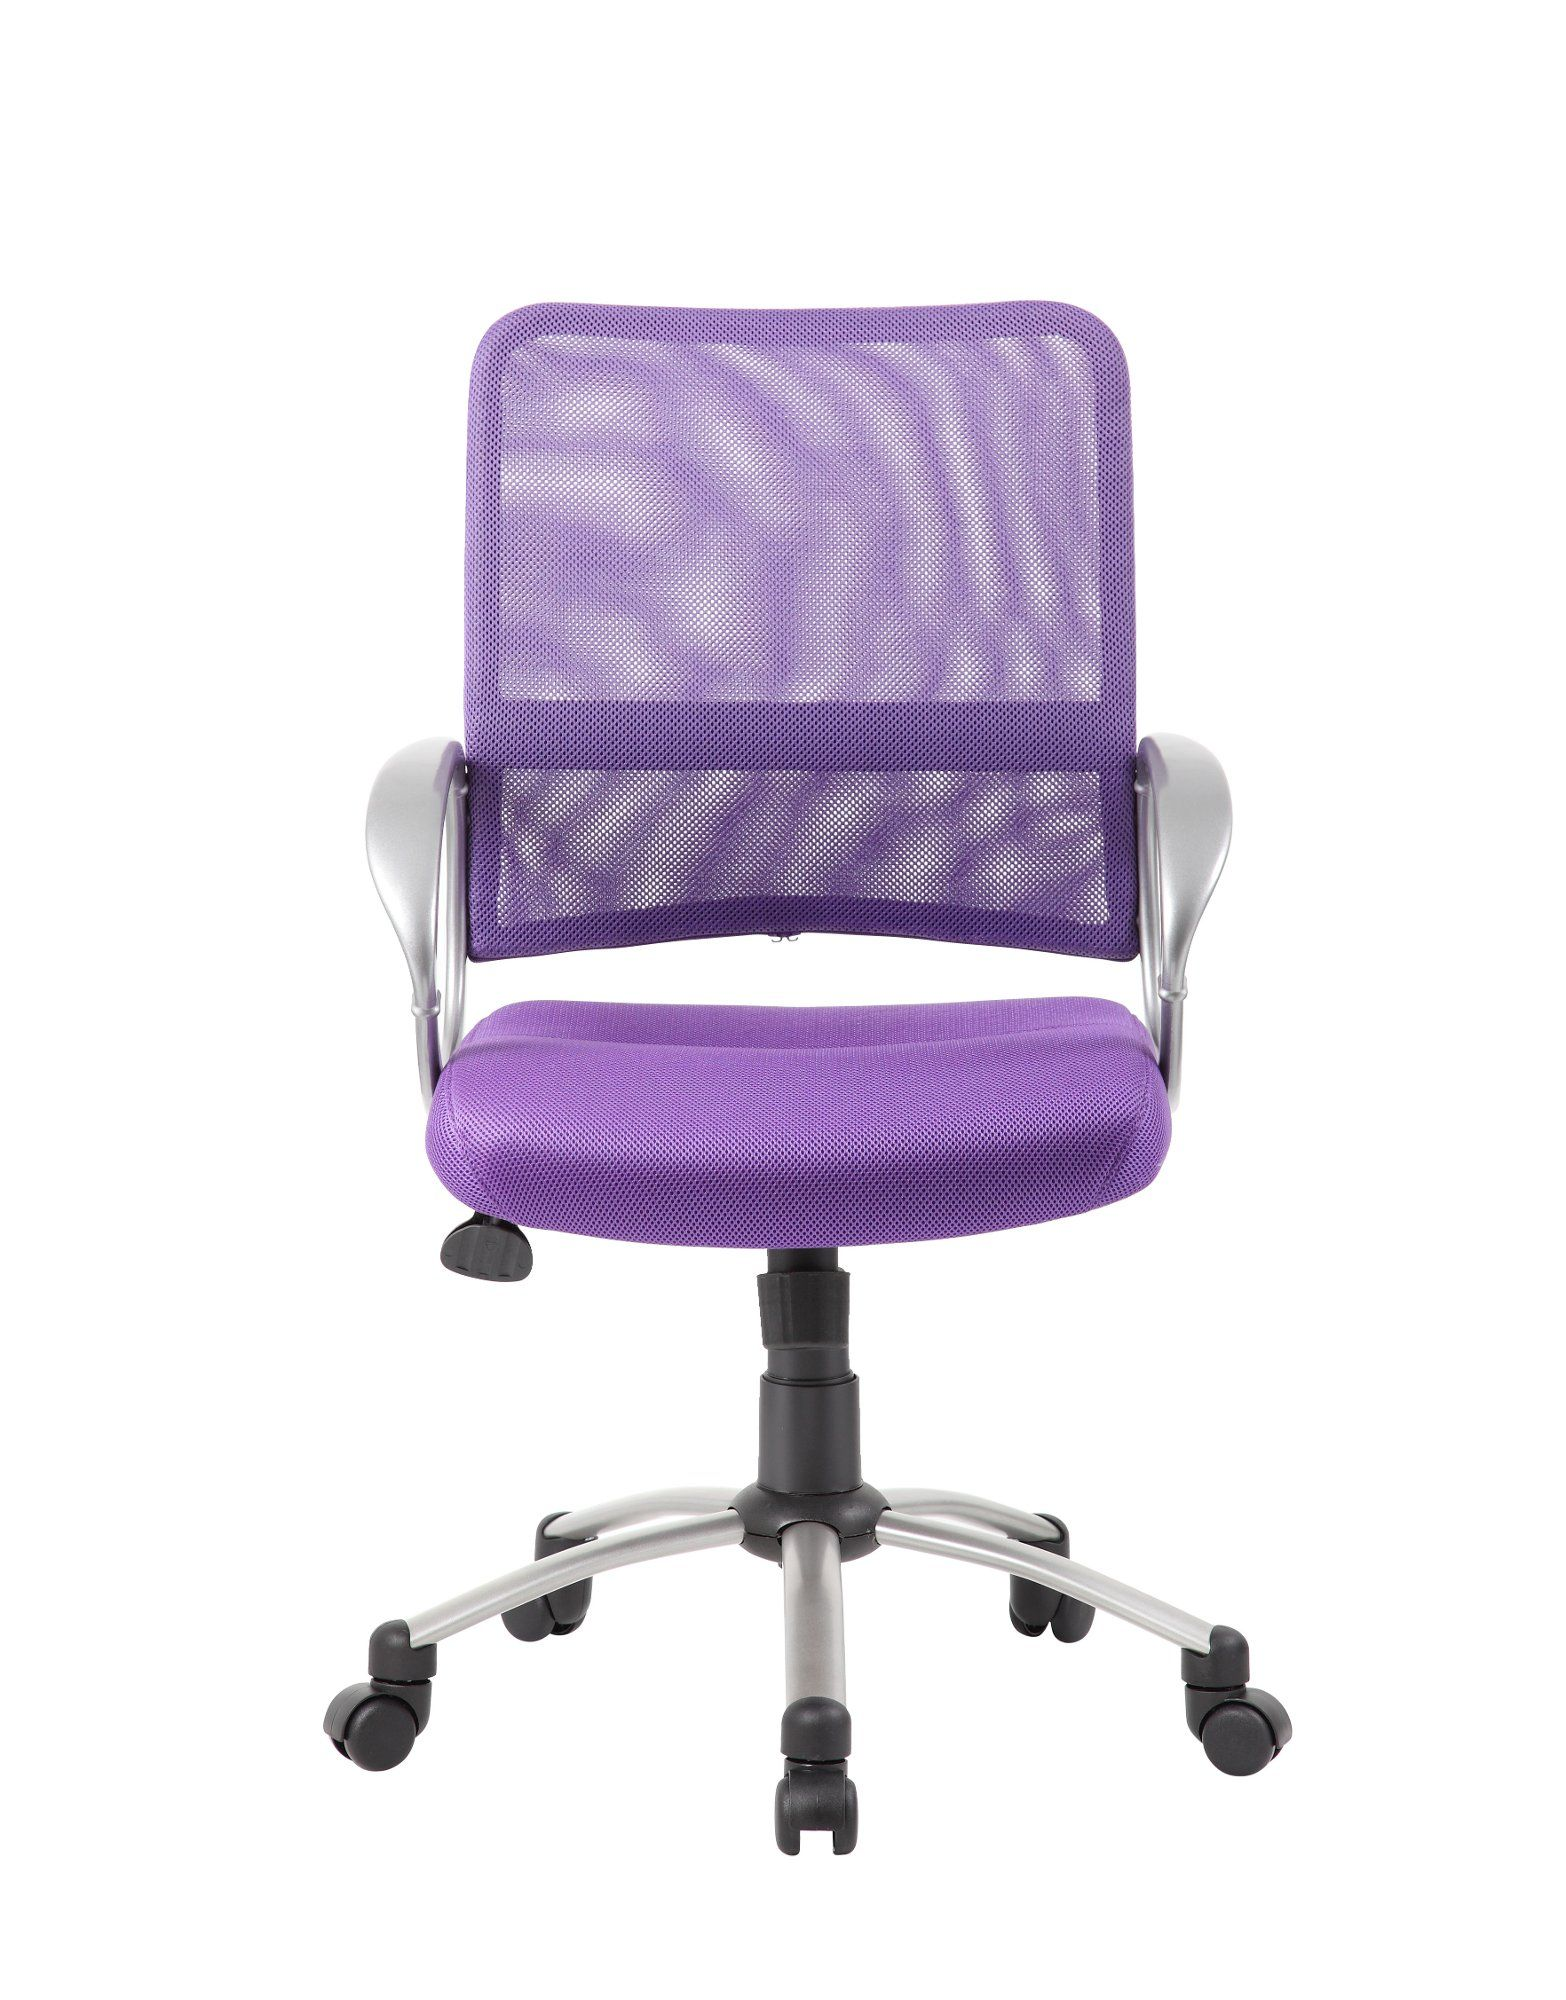 Adjustable purple breathable office chair chair white